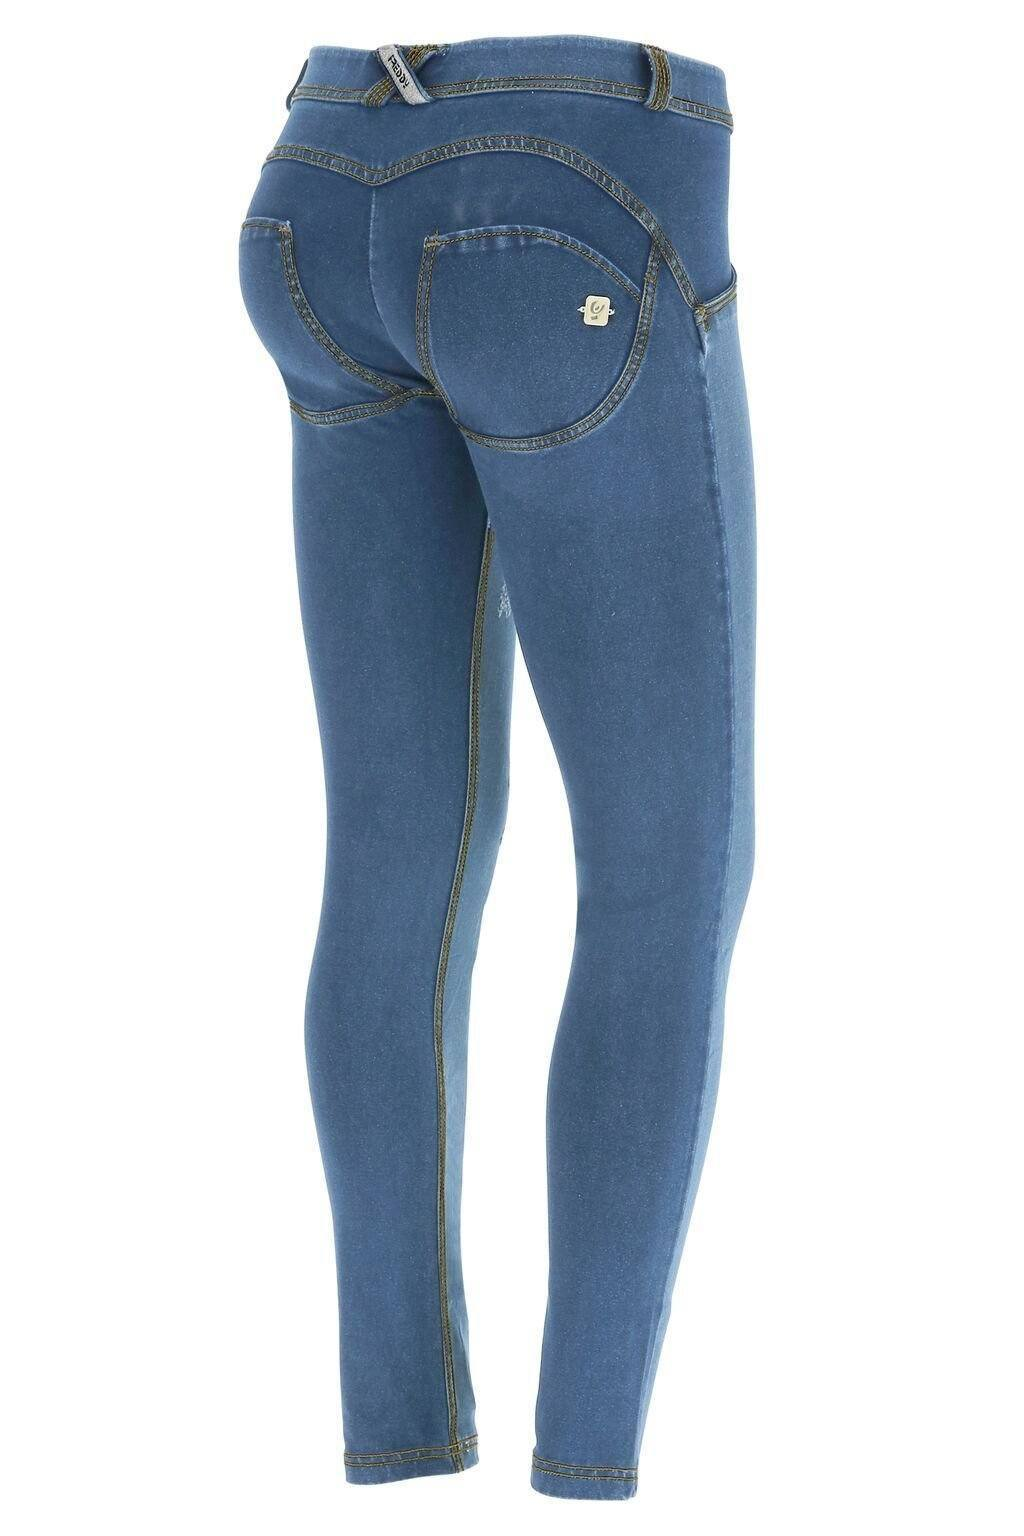 WR.UP® Shaping Jeans Skinny Mid Distressed Denim Front Light Blue